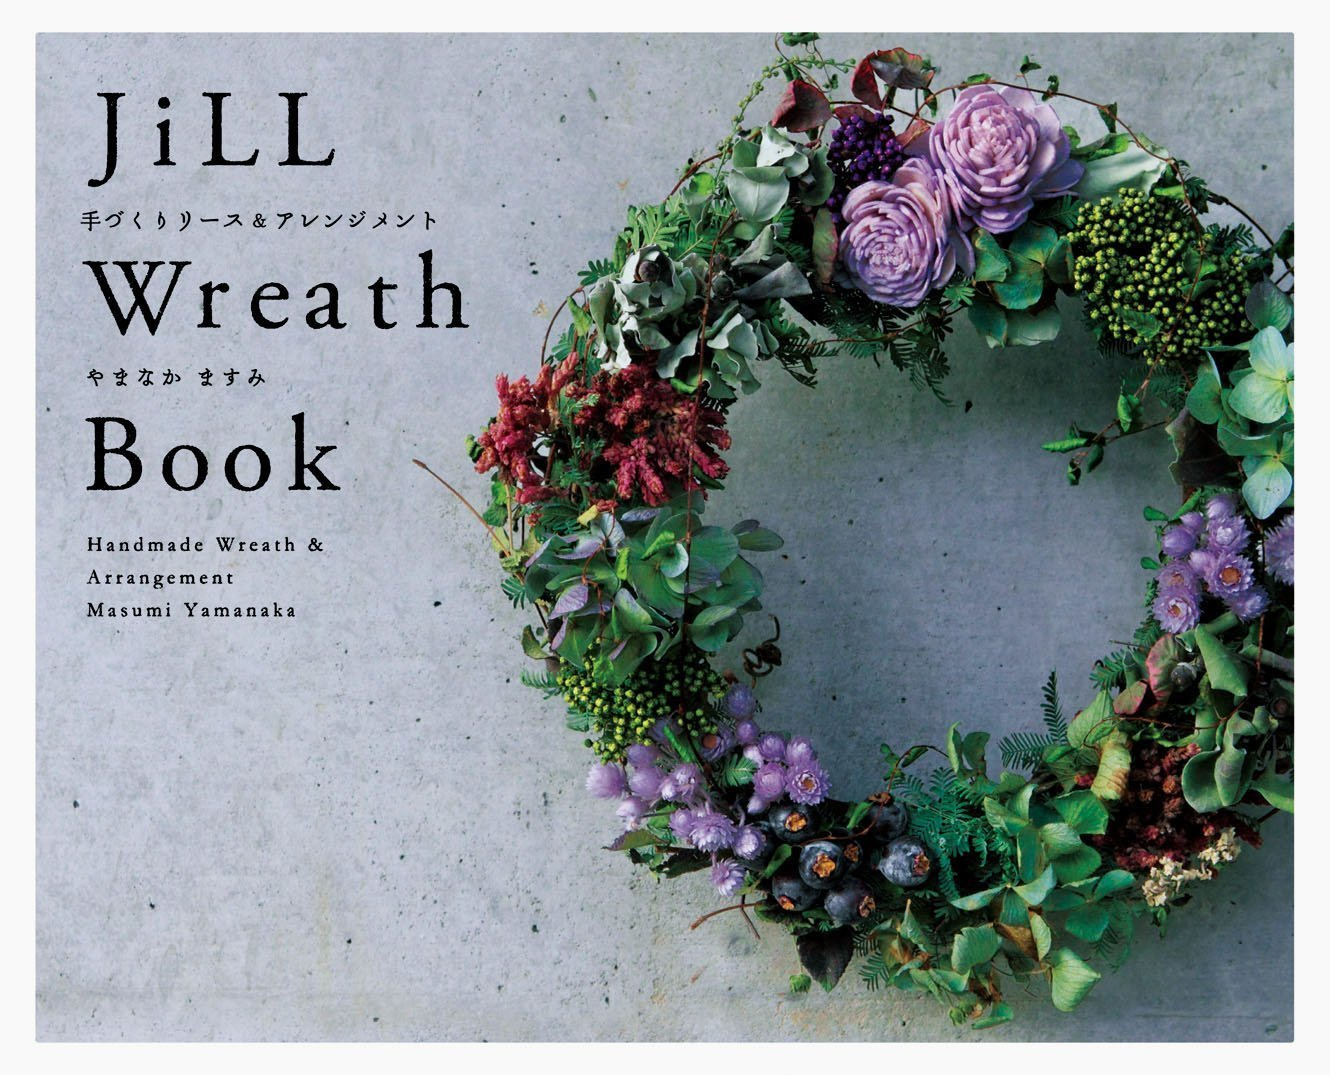 WreathBook.jpg